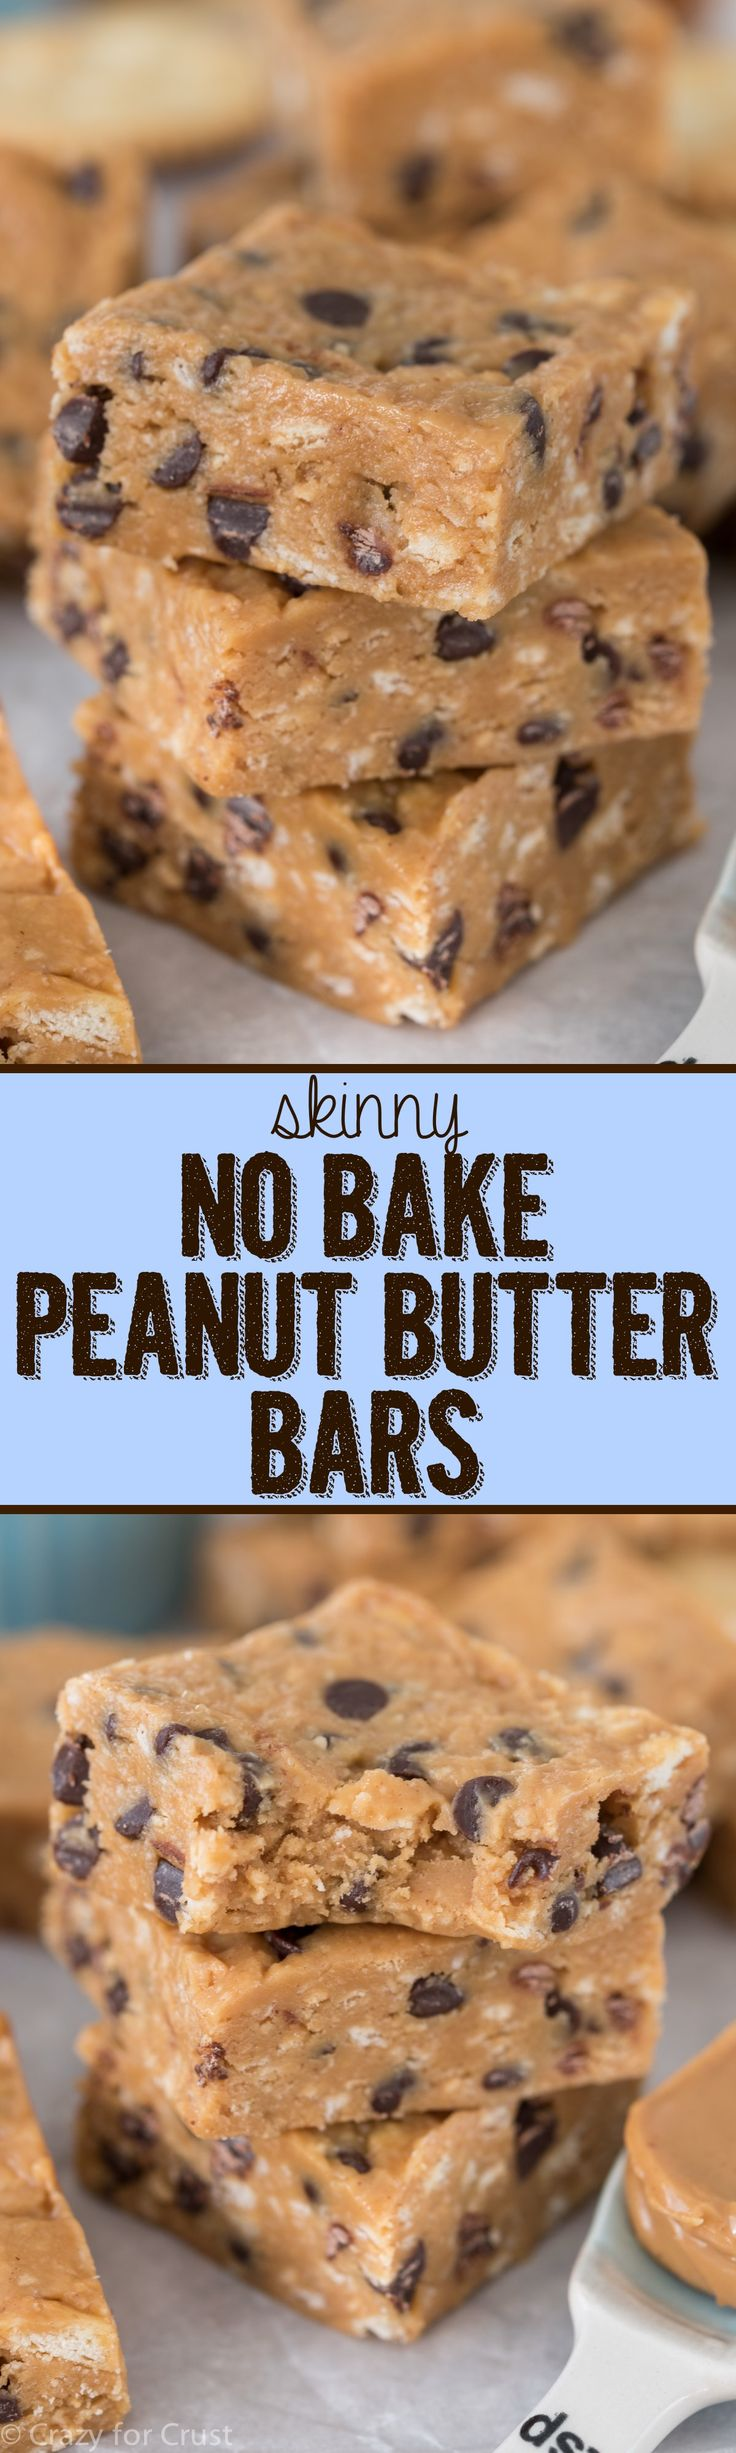 Skinny No Bake Peanut Butter Bars - this easy peanut butter bar recipe has way less calories and fat than the regular version and they're JUST as good if not better! More